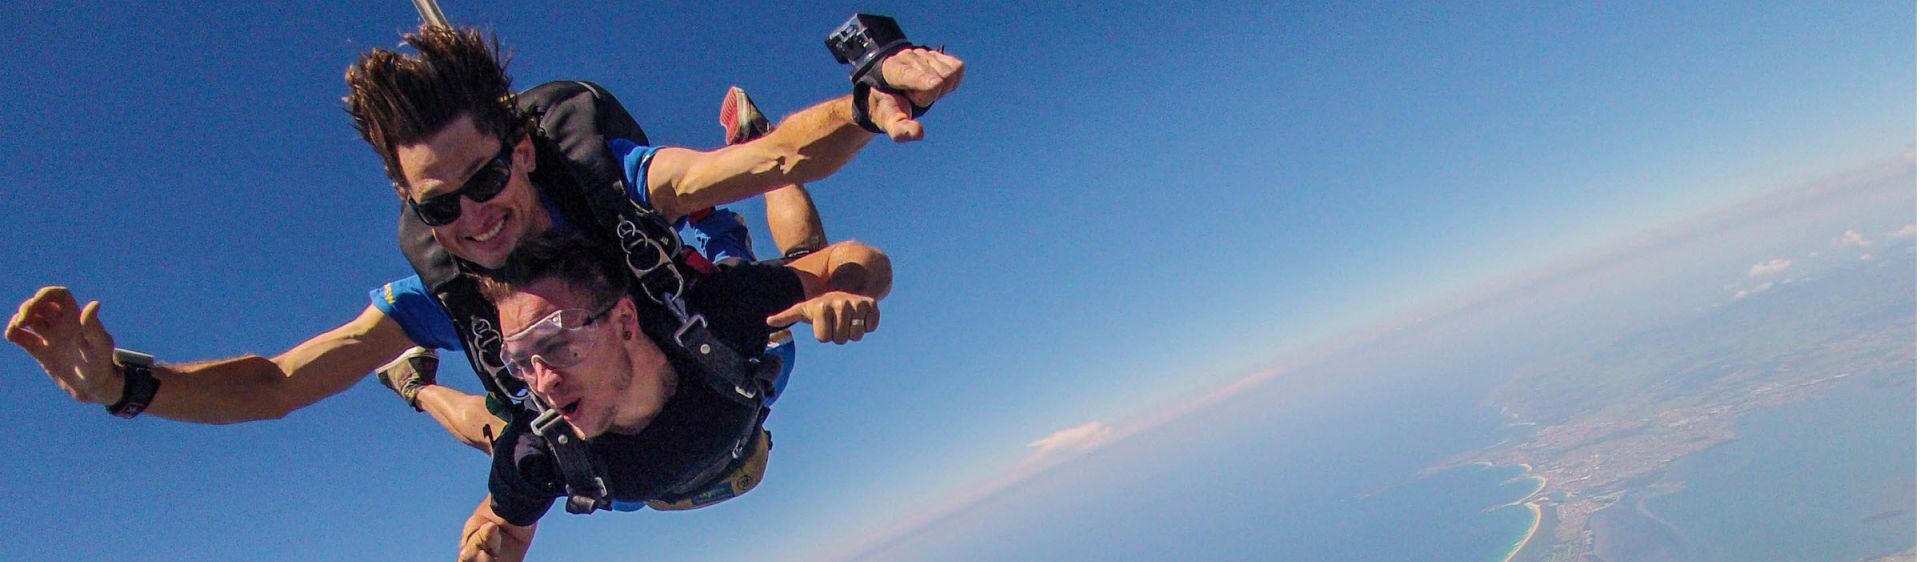 Chief Funster Andrew Smith skydiving with Skydive The Beach over Wollongong